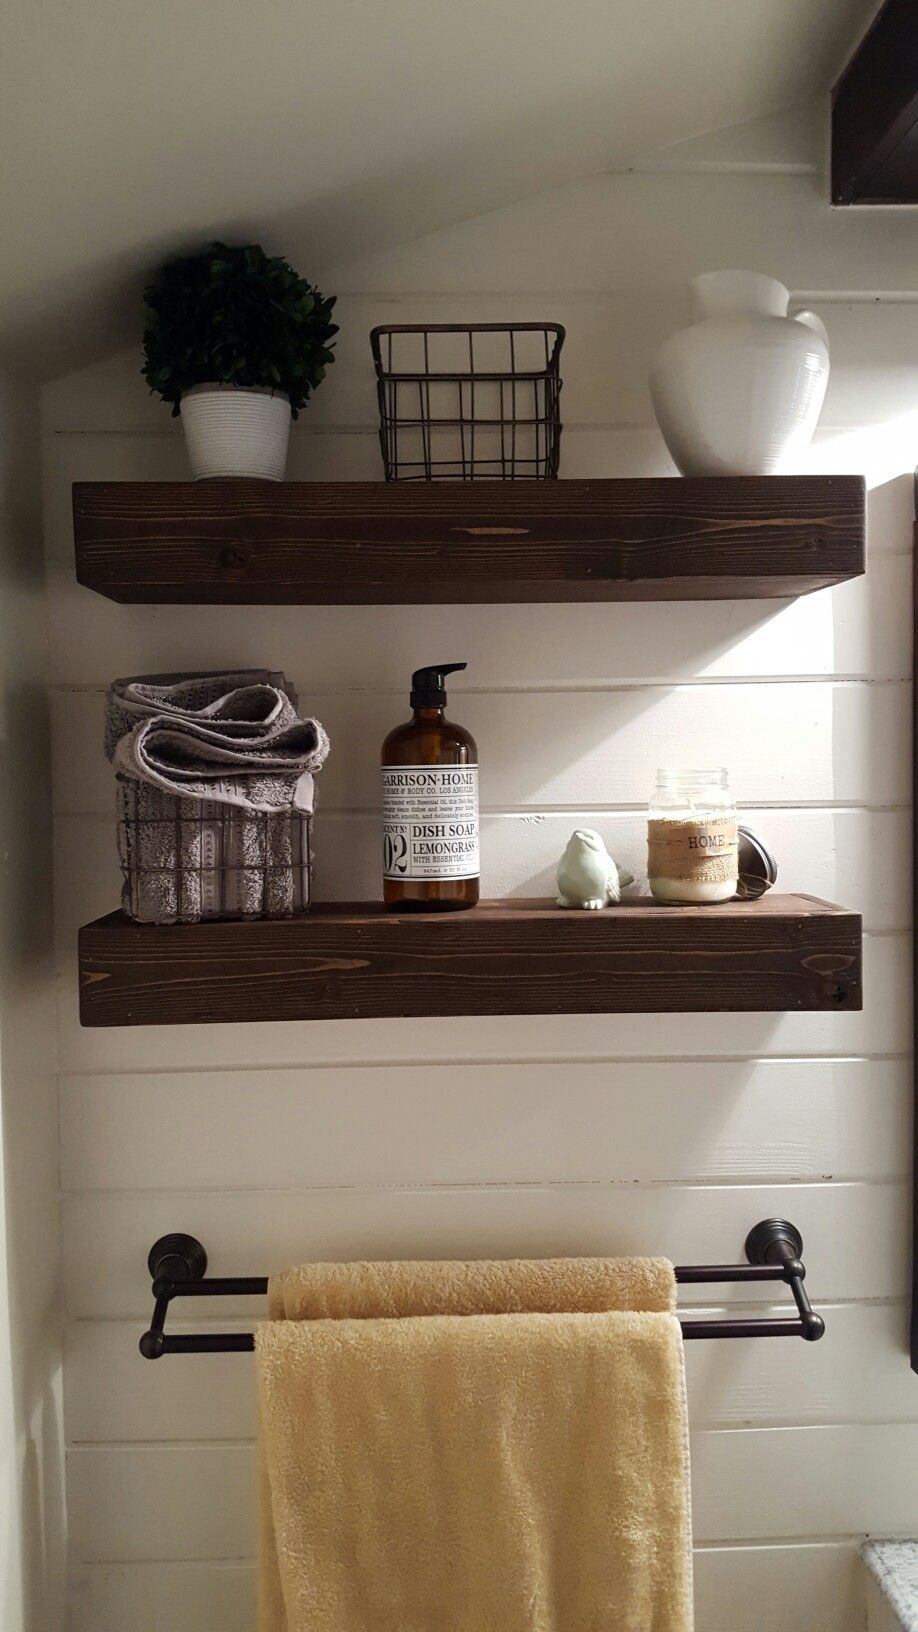 farmhouse bathroom decor floating shelves shiplap wall accent floatingshelvesdisplay office unit garment rack decking lights command strips for hanging floor bedroom glass dvd